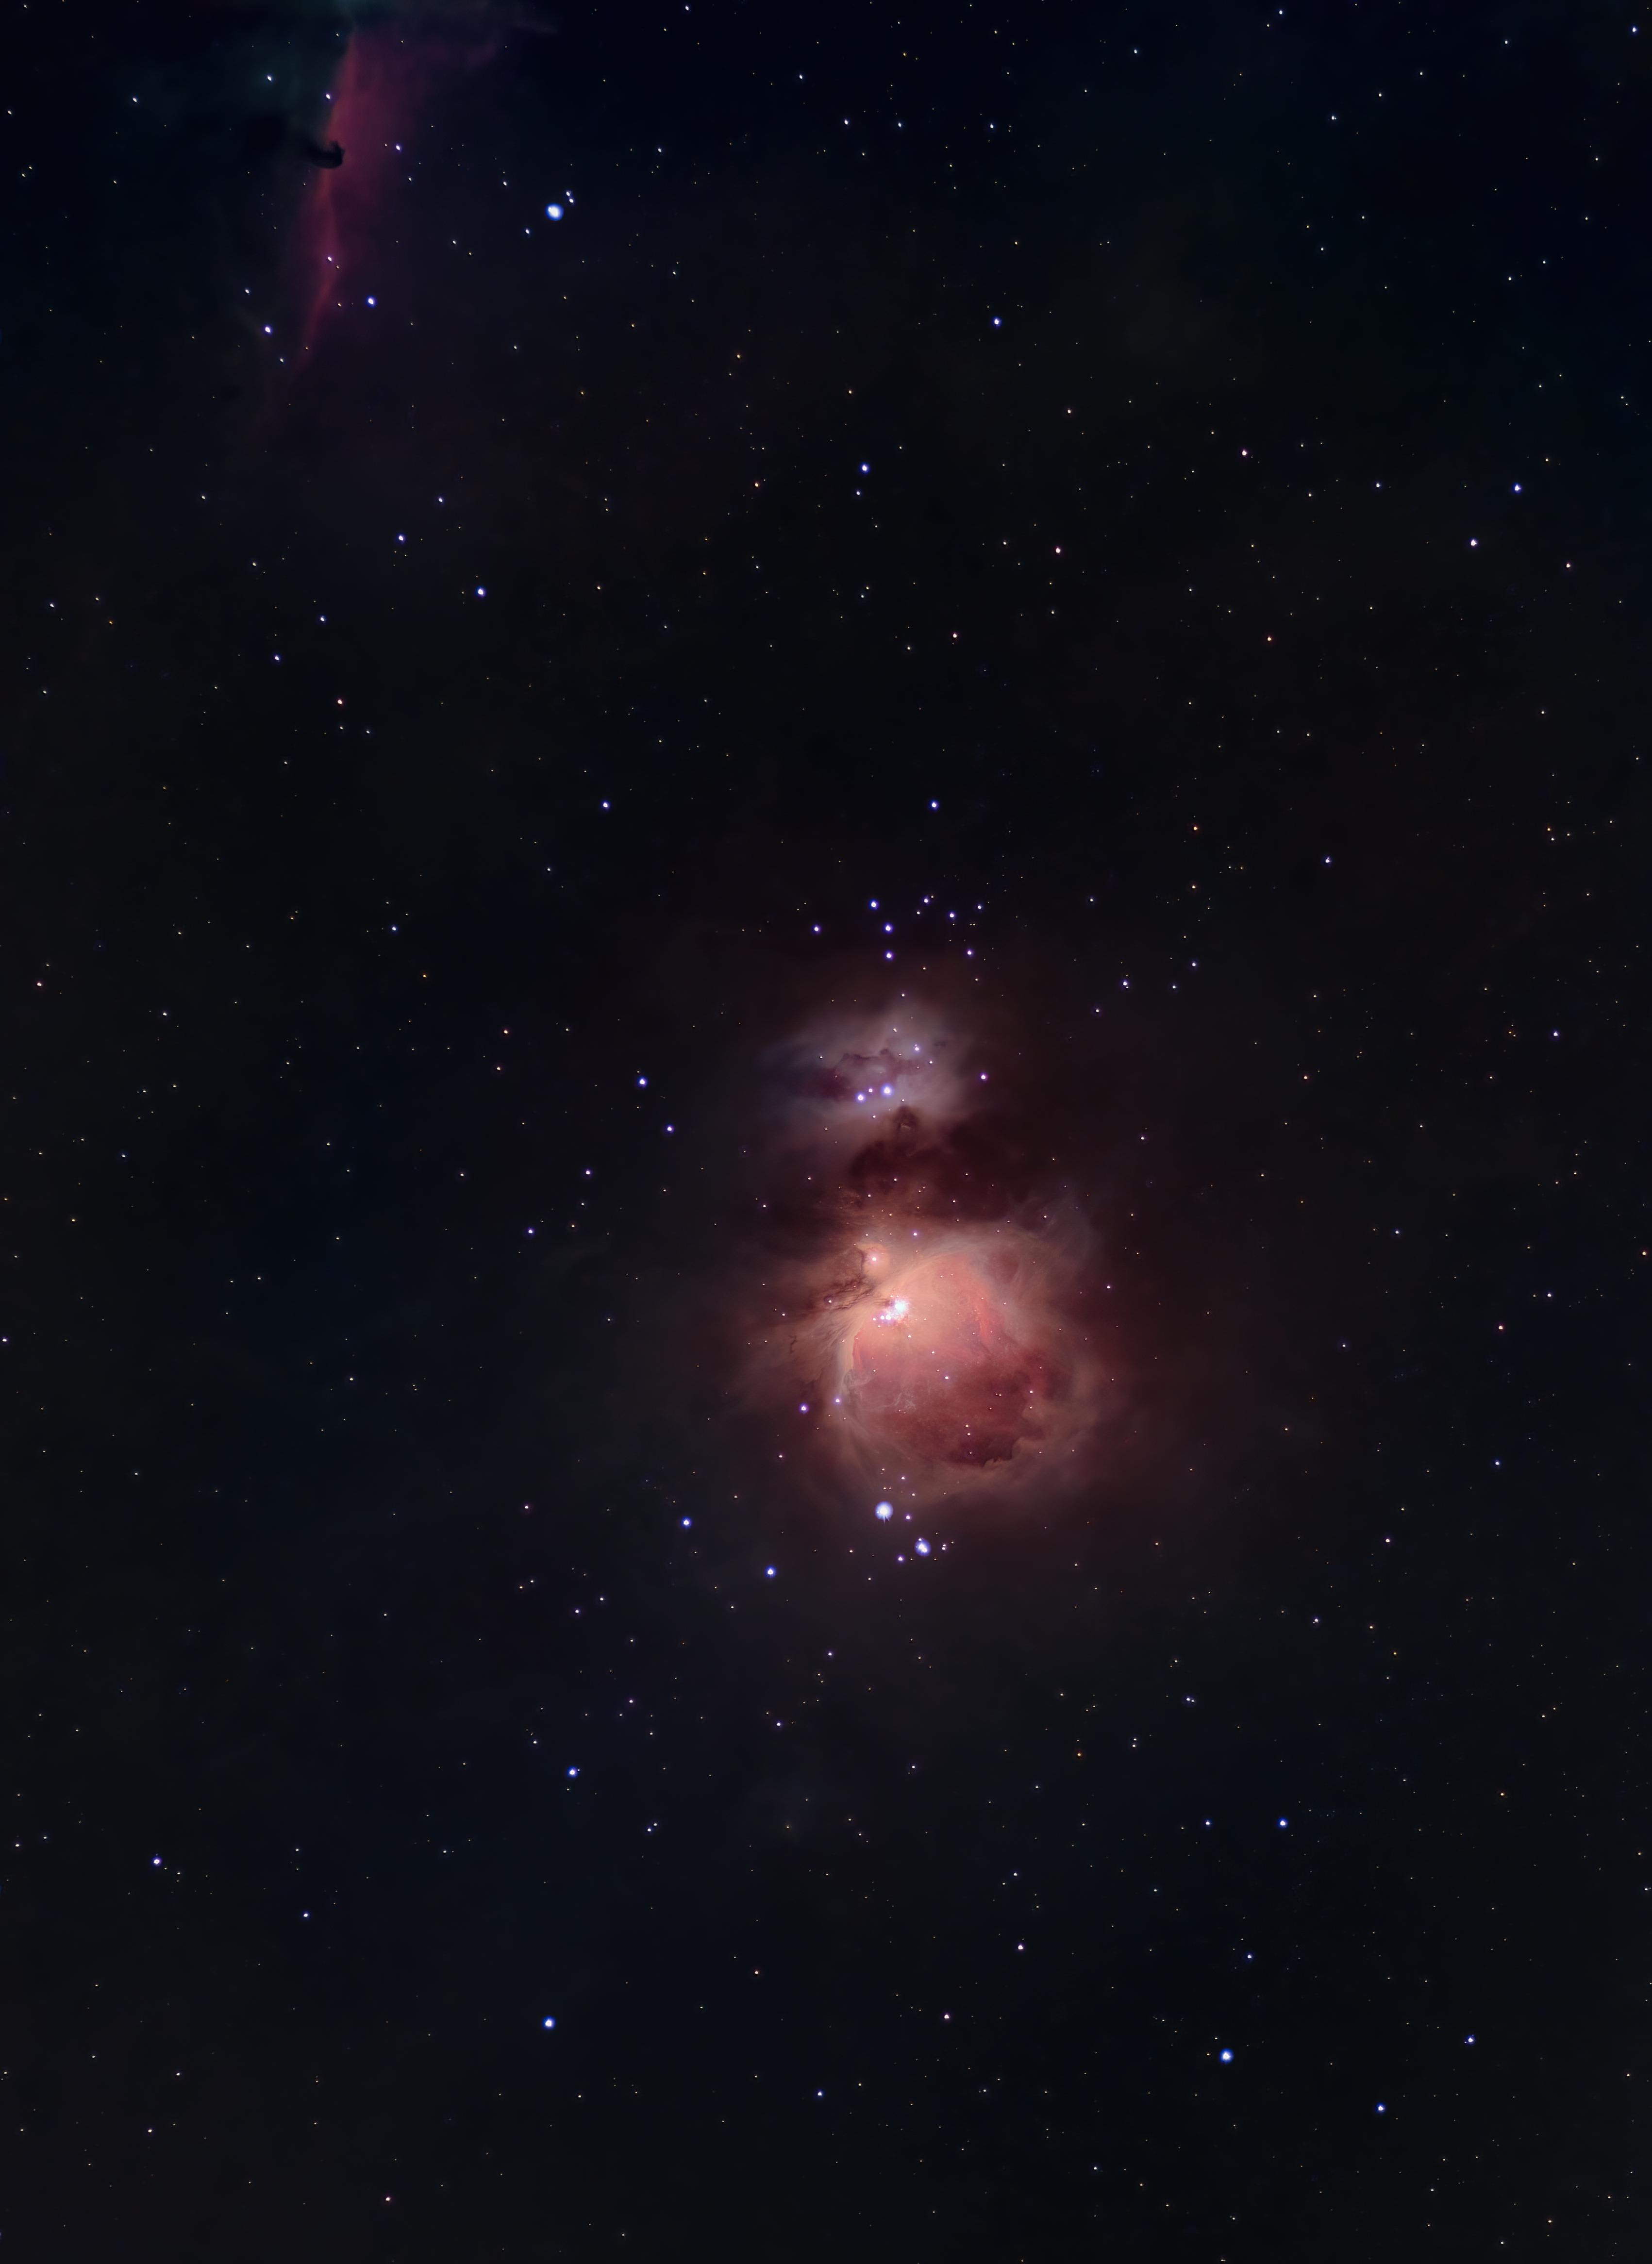 Orion and the Horsehead nebula